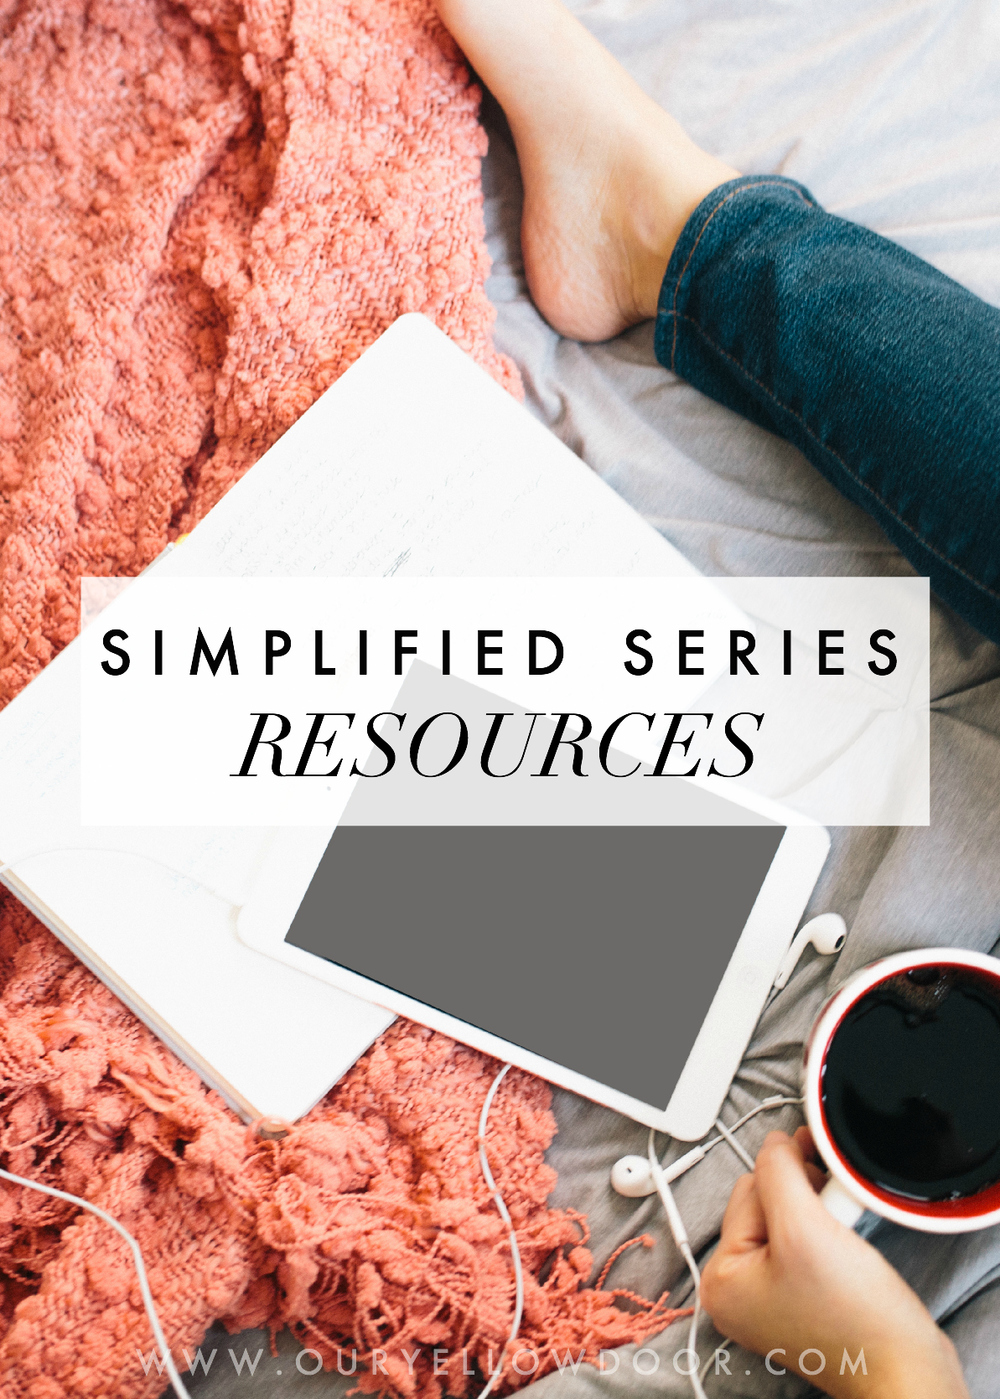 Simplified-Series-Resources.jpg